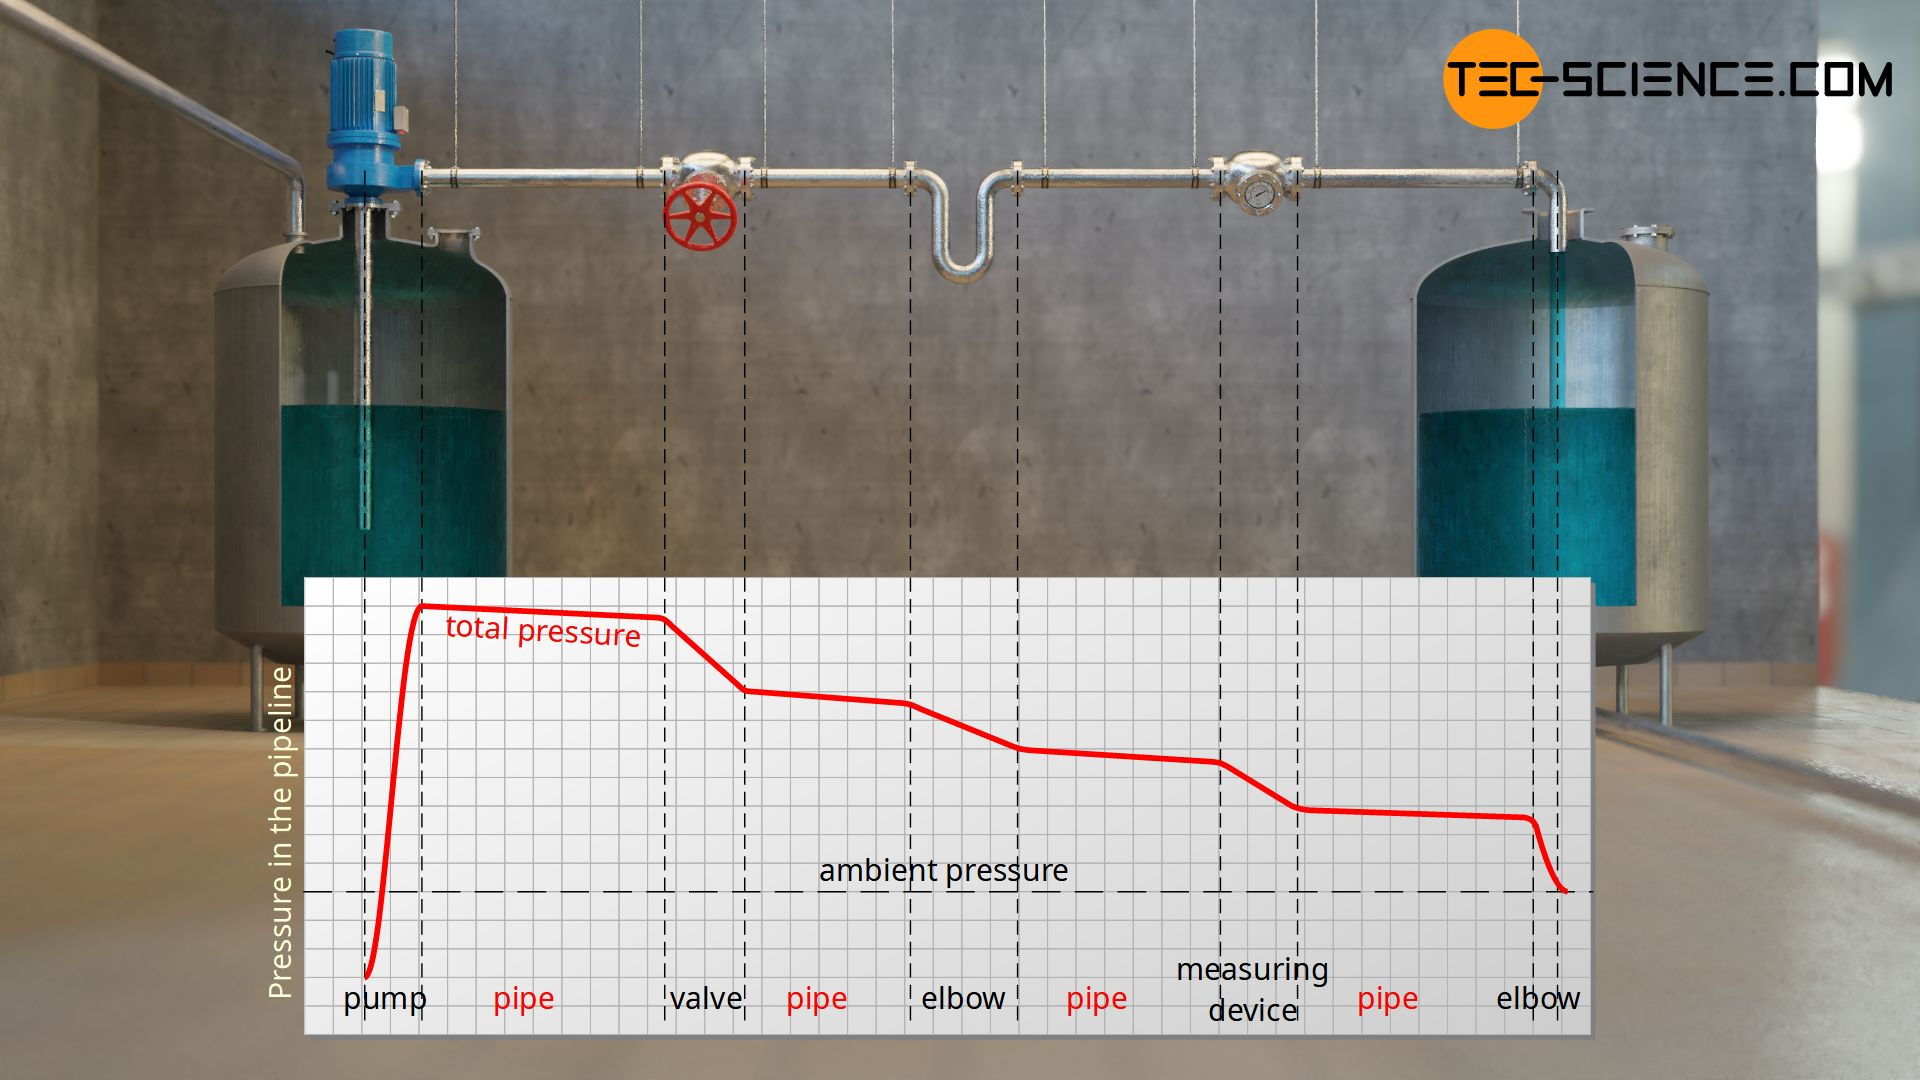 (Total) pressure in a pipeline system